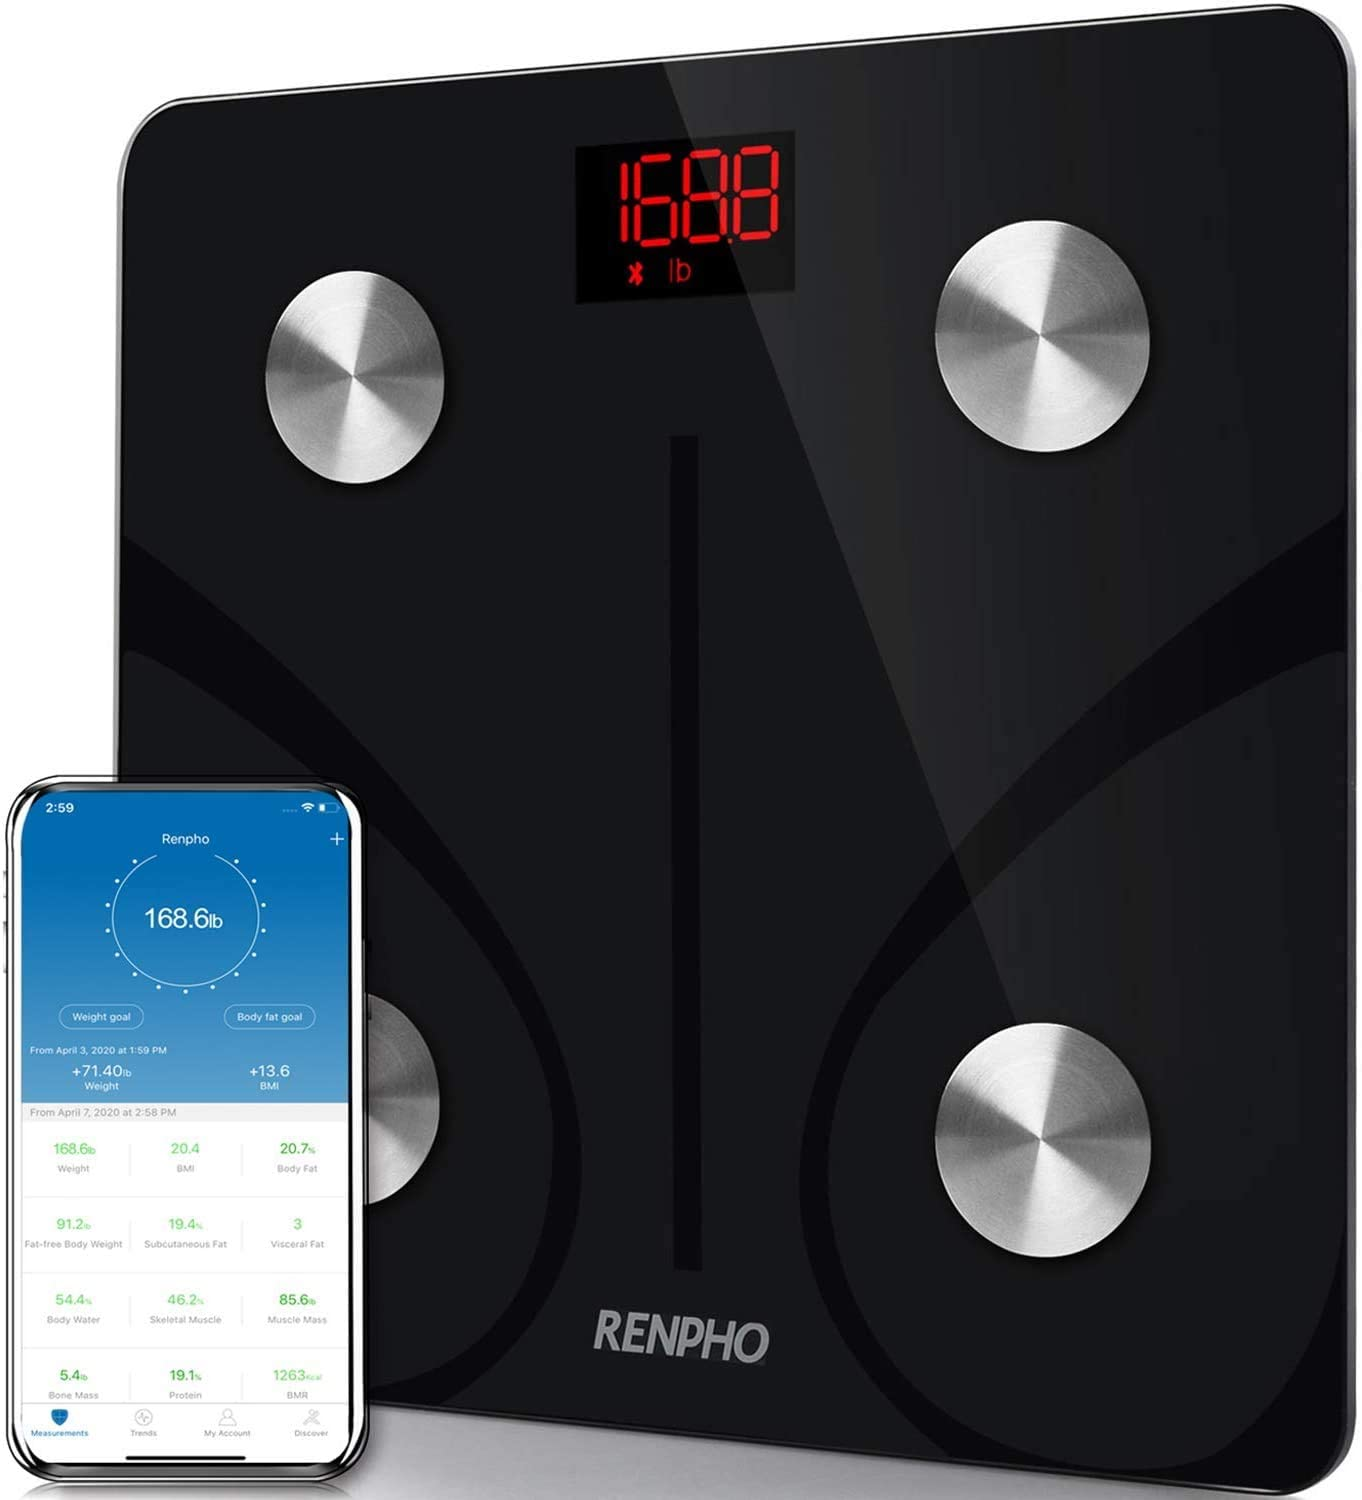 RENPHO Bluetooth Smart BMI Digital Body Fat Scale